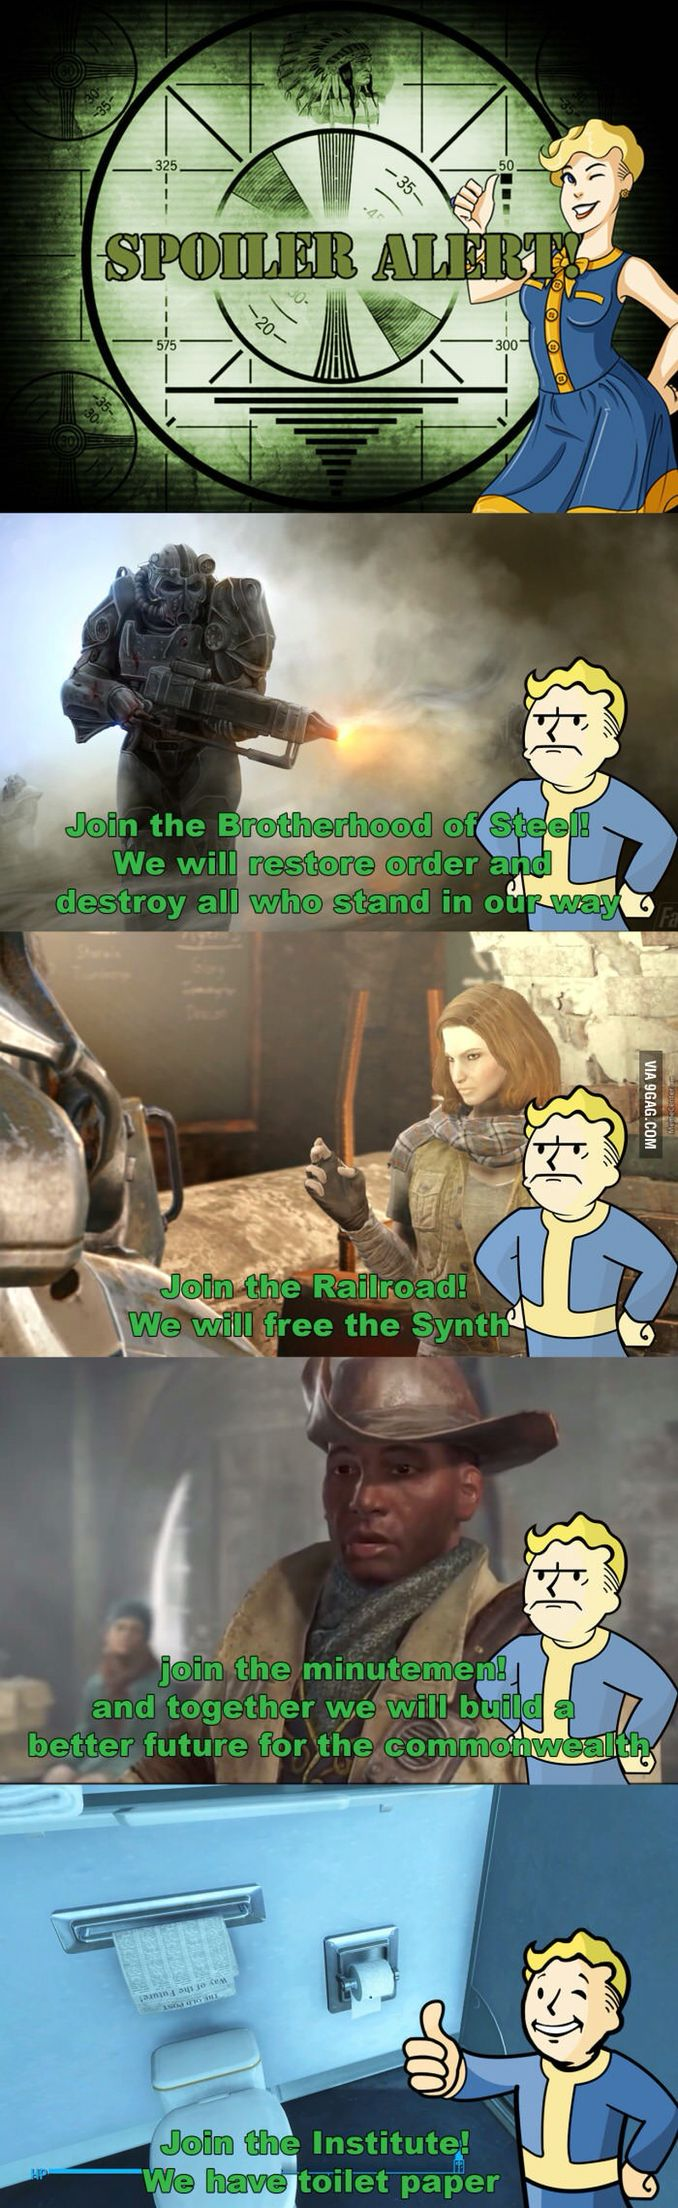 Fallout 4 Factions in a Nutshell.